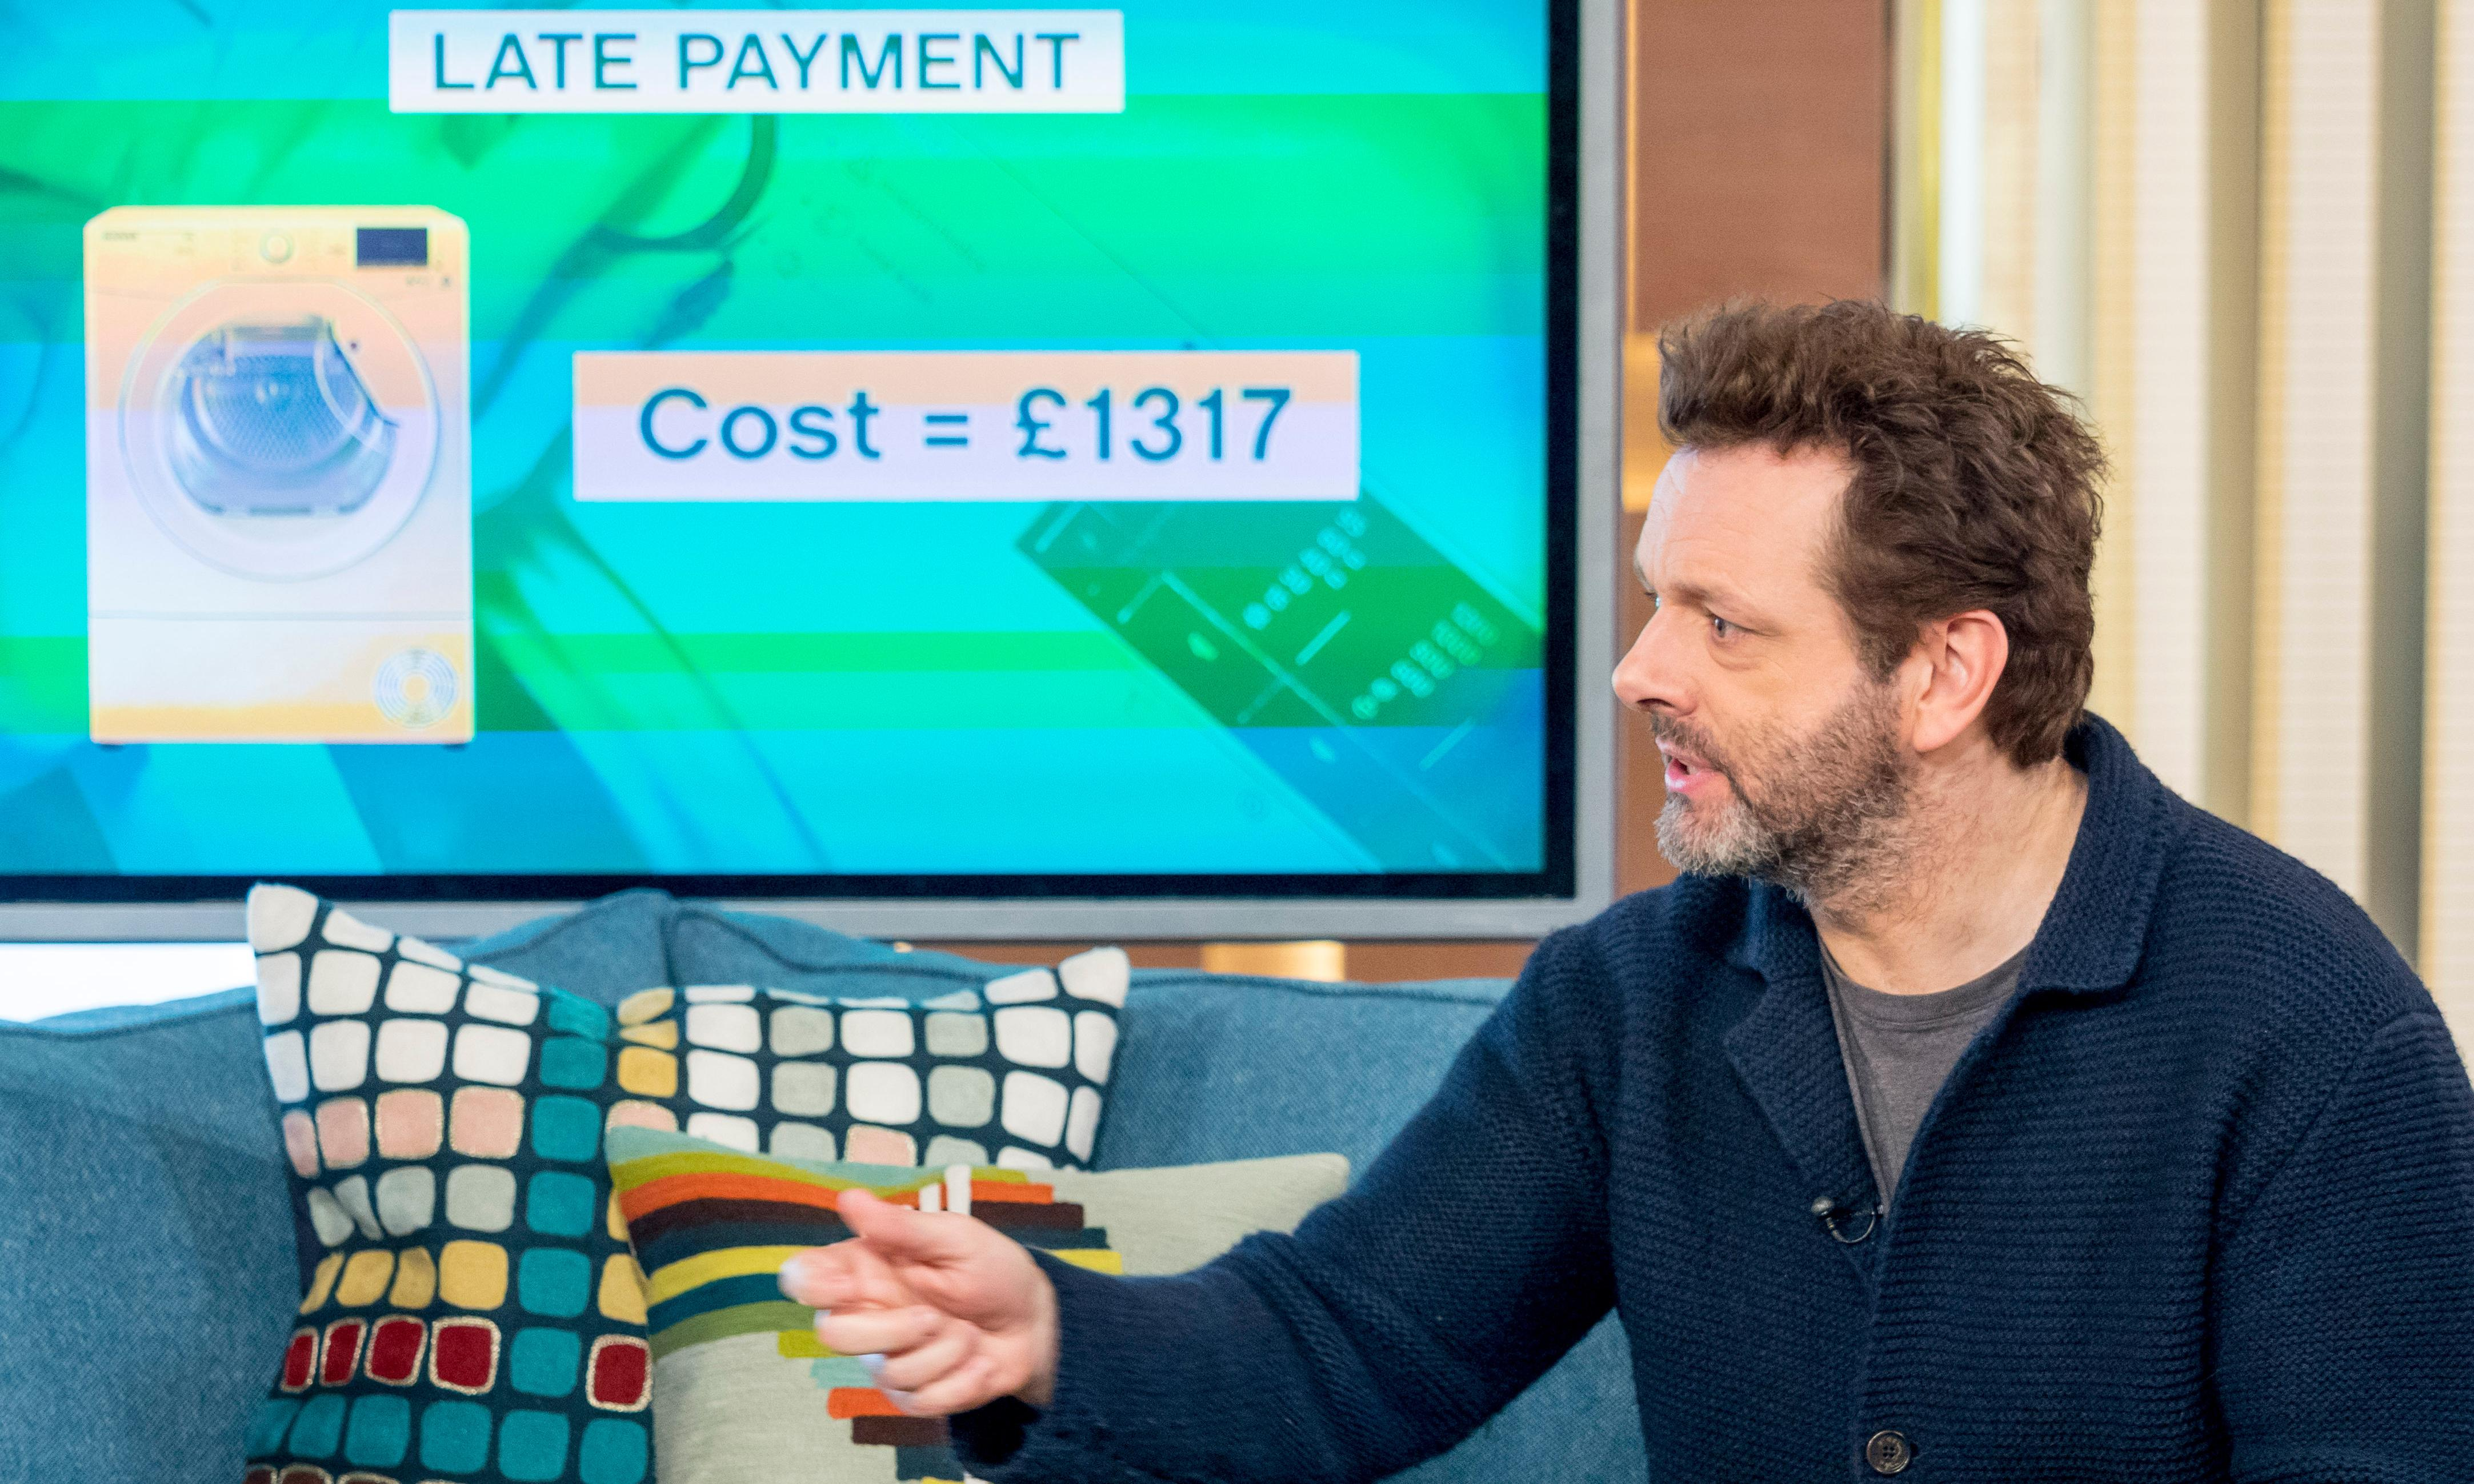 Payday loans are bad for your mental health